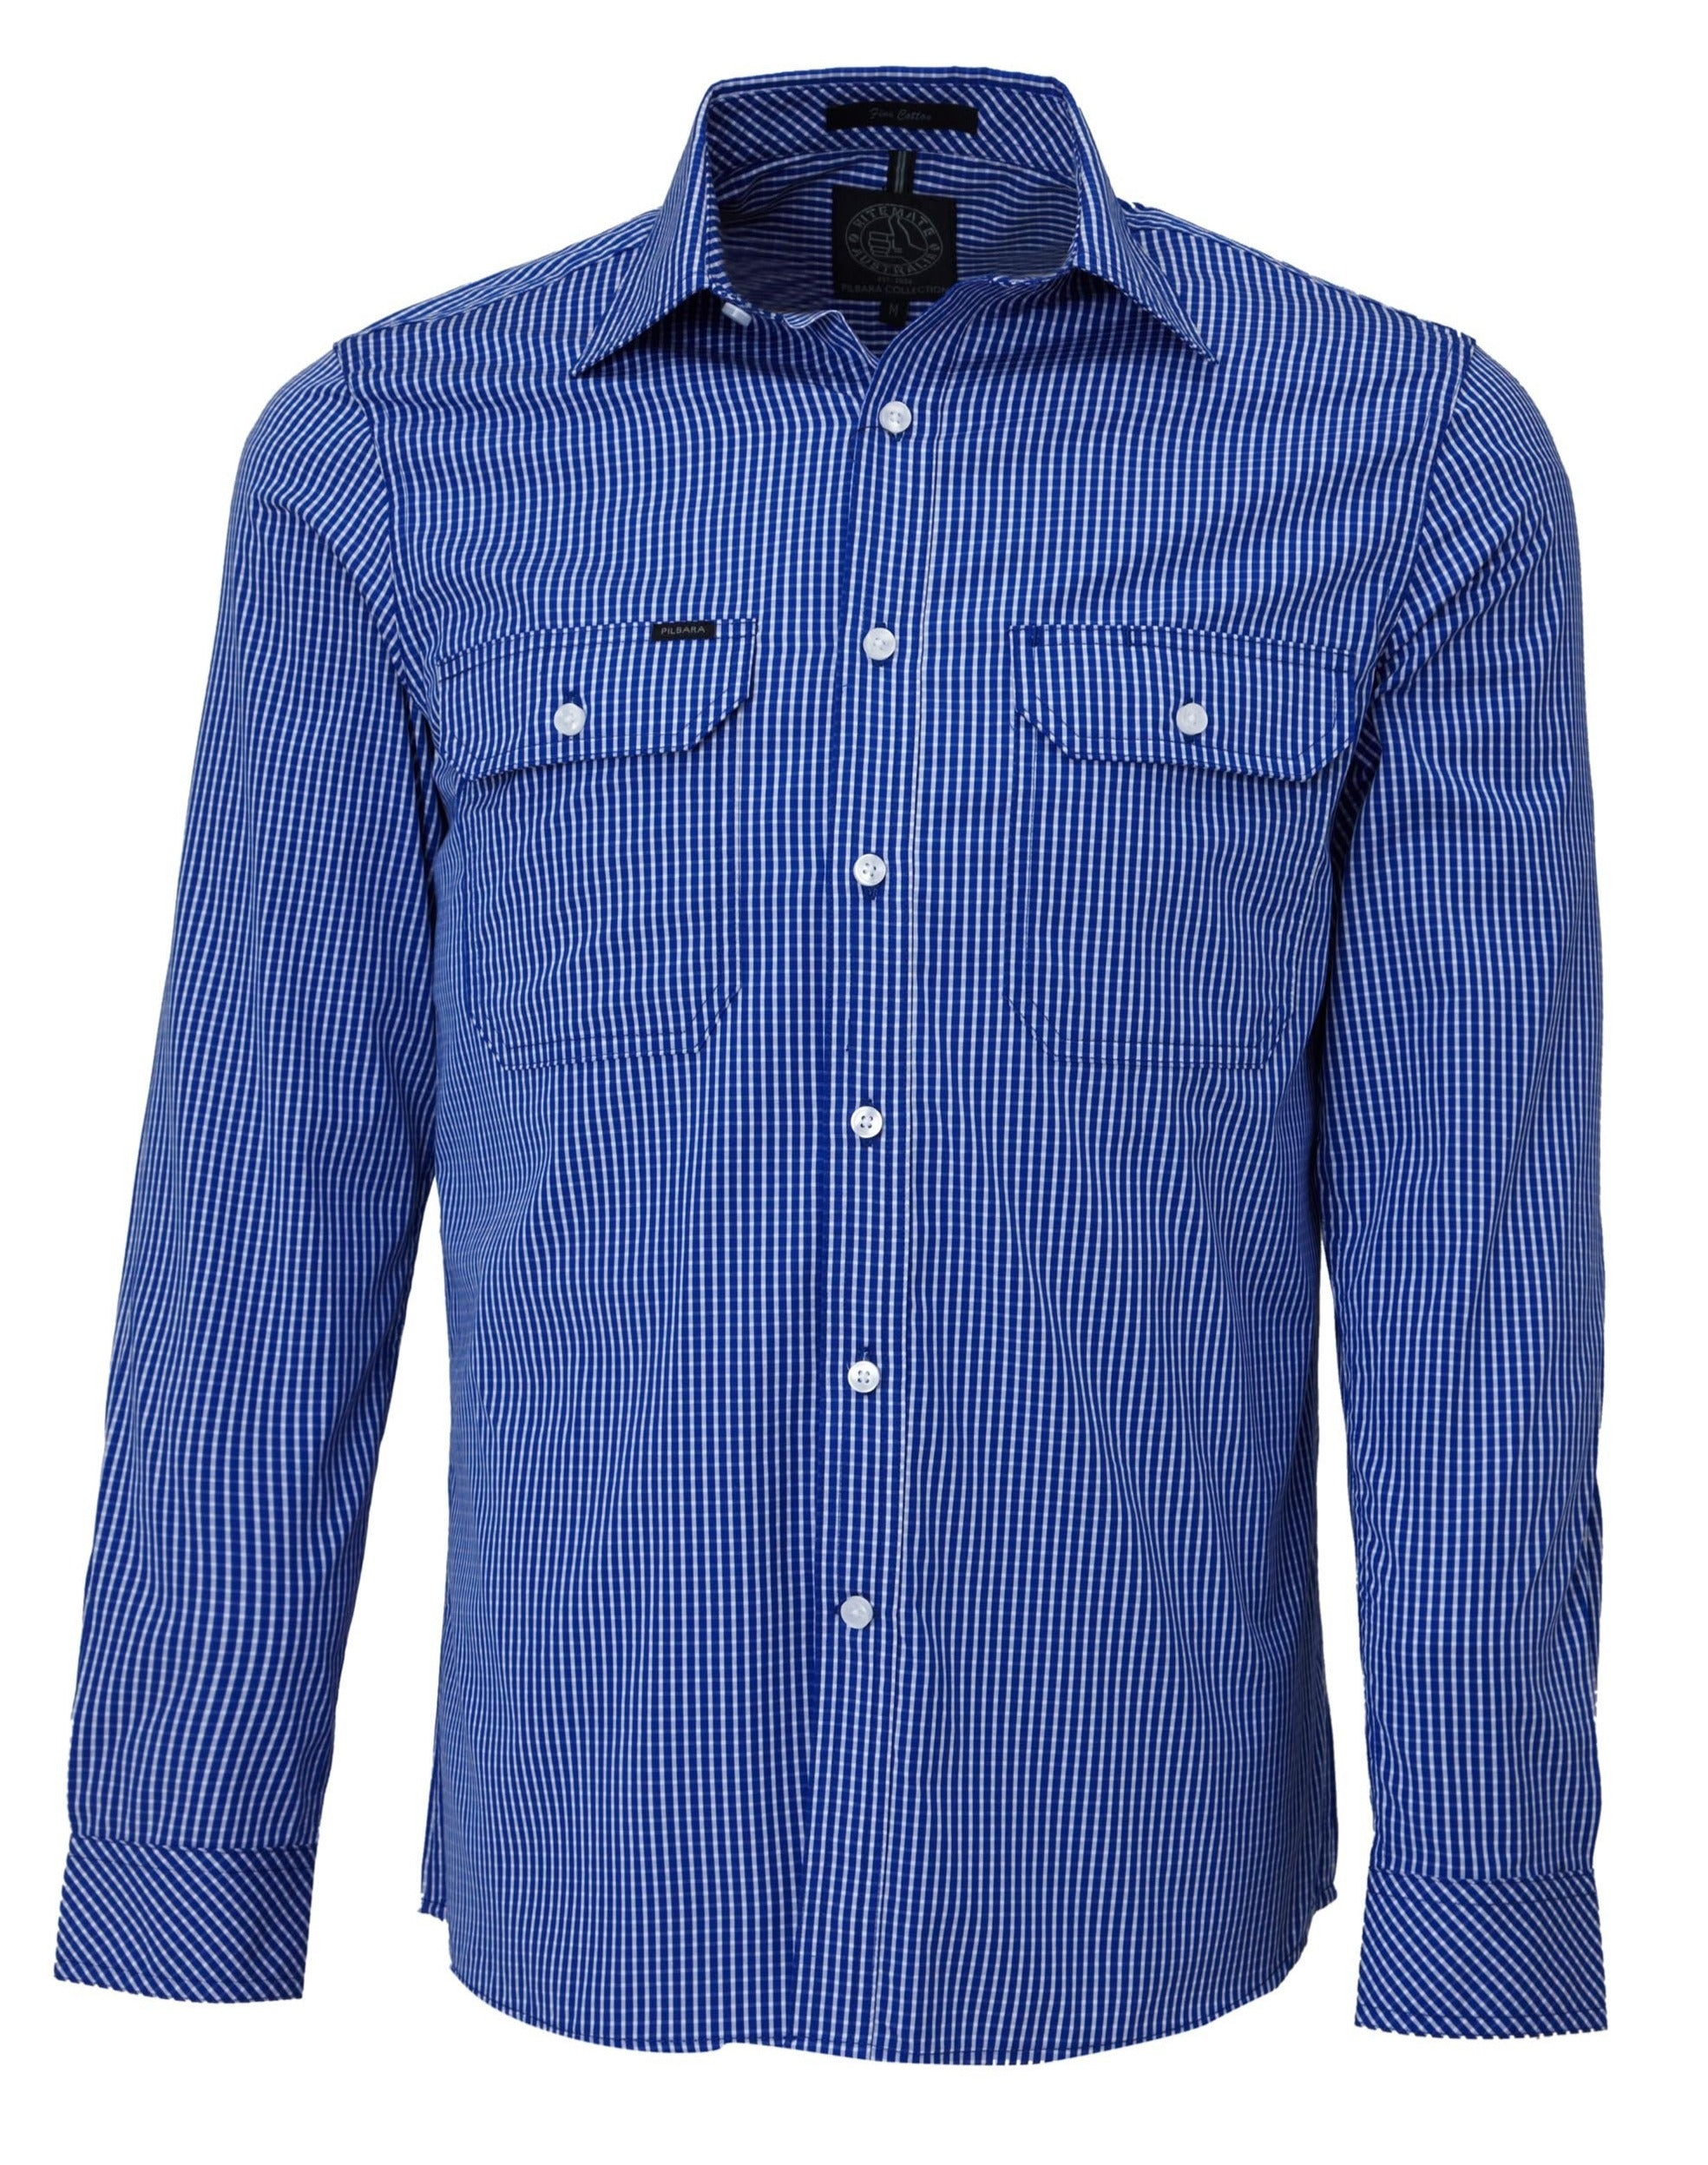 Ritemate Pilbara Check Double Pocket Shirt (4498137481353)